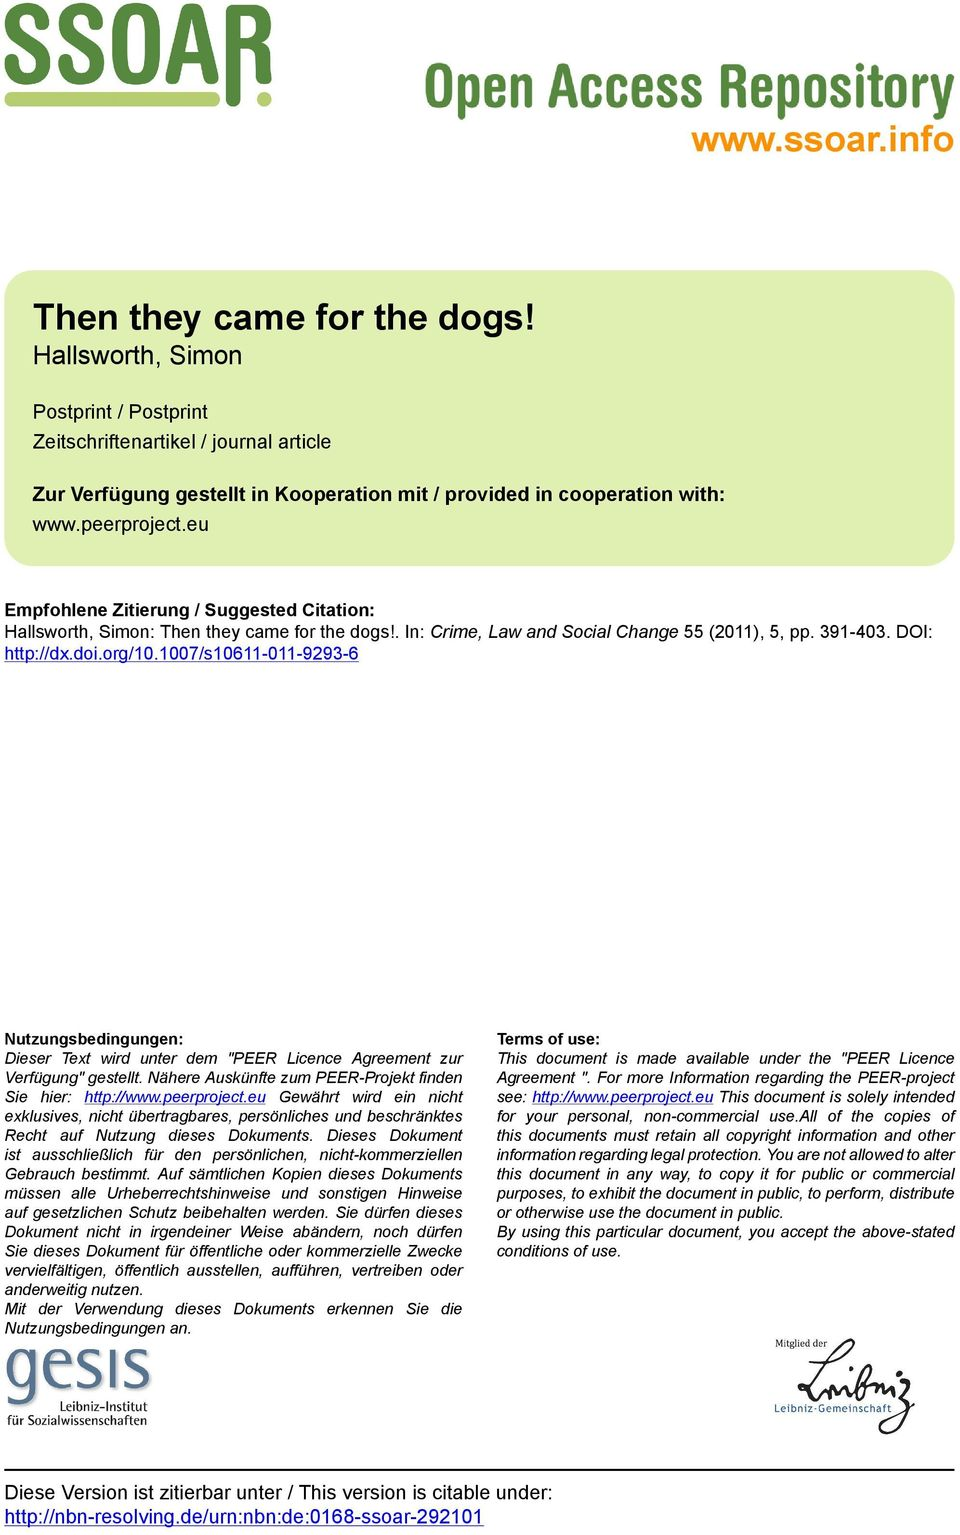 eu Empfohlene Zitierung / Suggested Citation: Hallsworth, Simon: Then they came for the dogs!. In: Crime, Law and Social Change 55 (2011), 5, pp. 391-403. DOI: http://dx.doi.org/10.